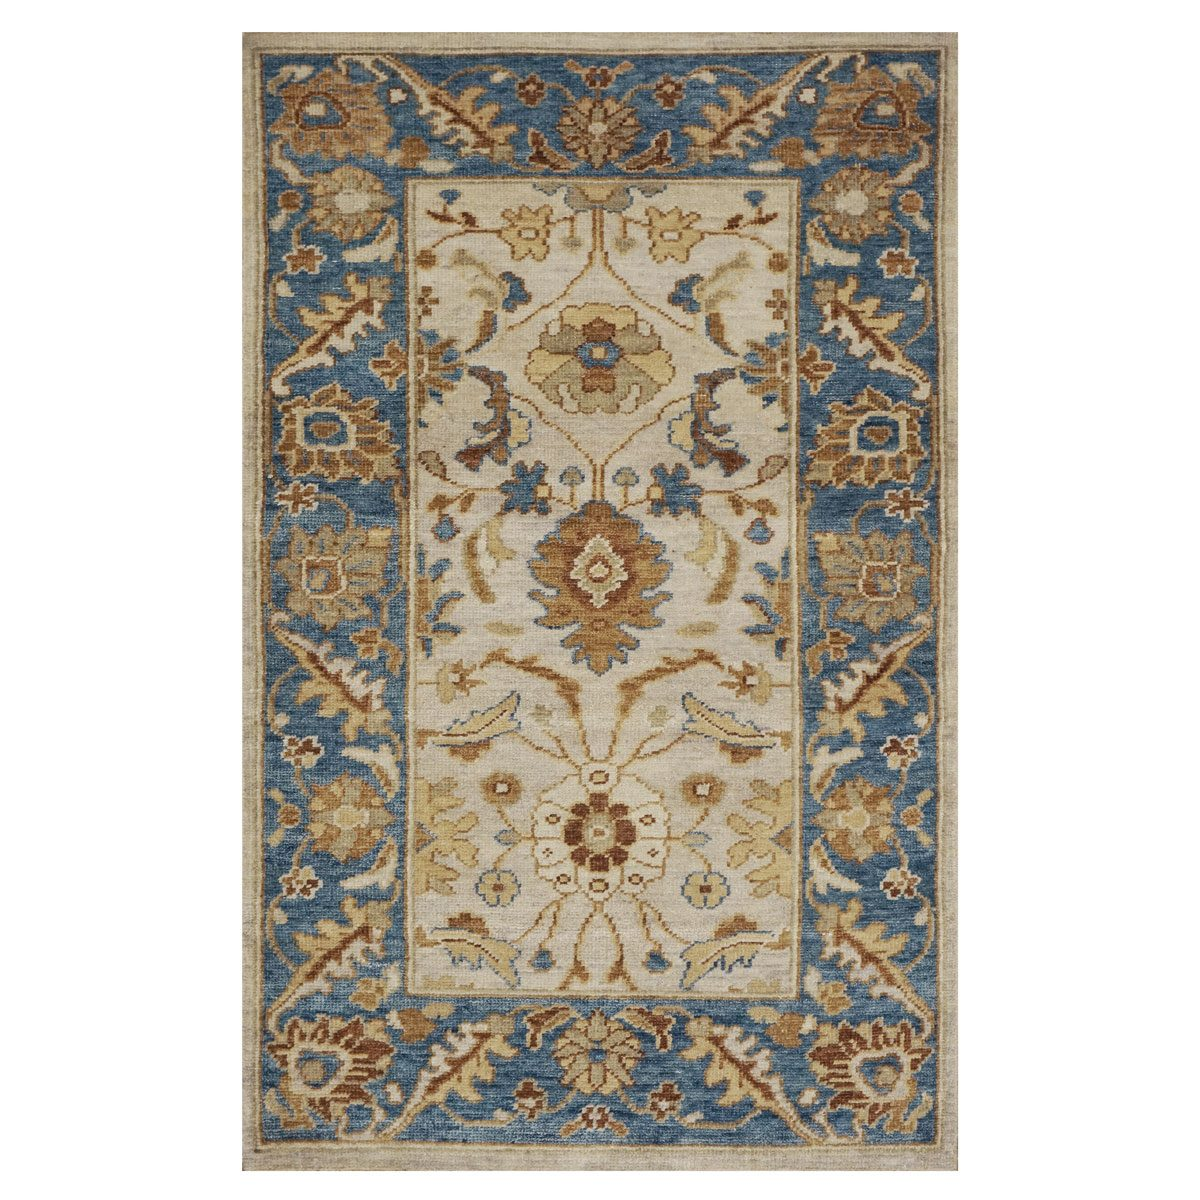 Area Rugs www.ashlyrugs.com - #1143296 Sultanabad Masters Collection 3 x 5